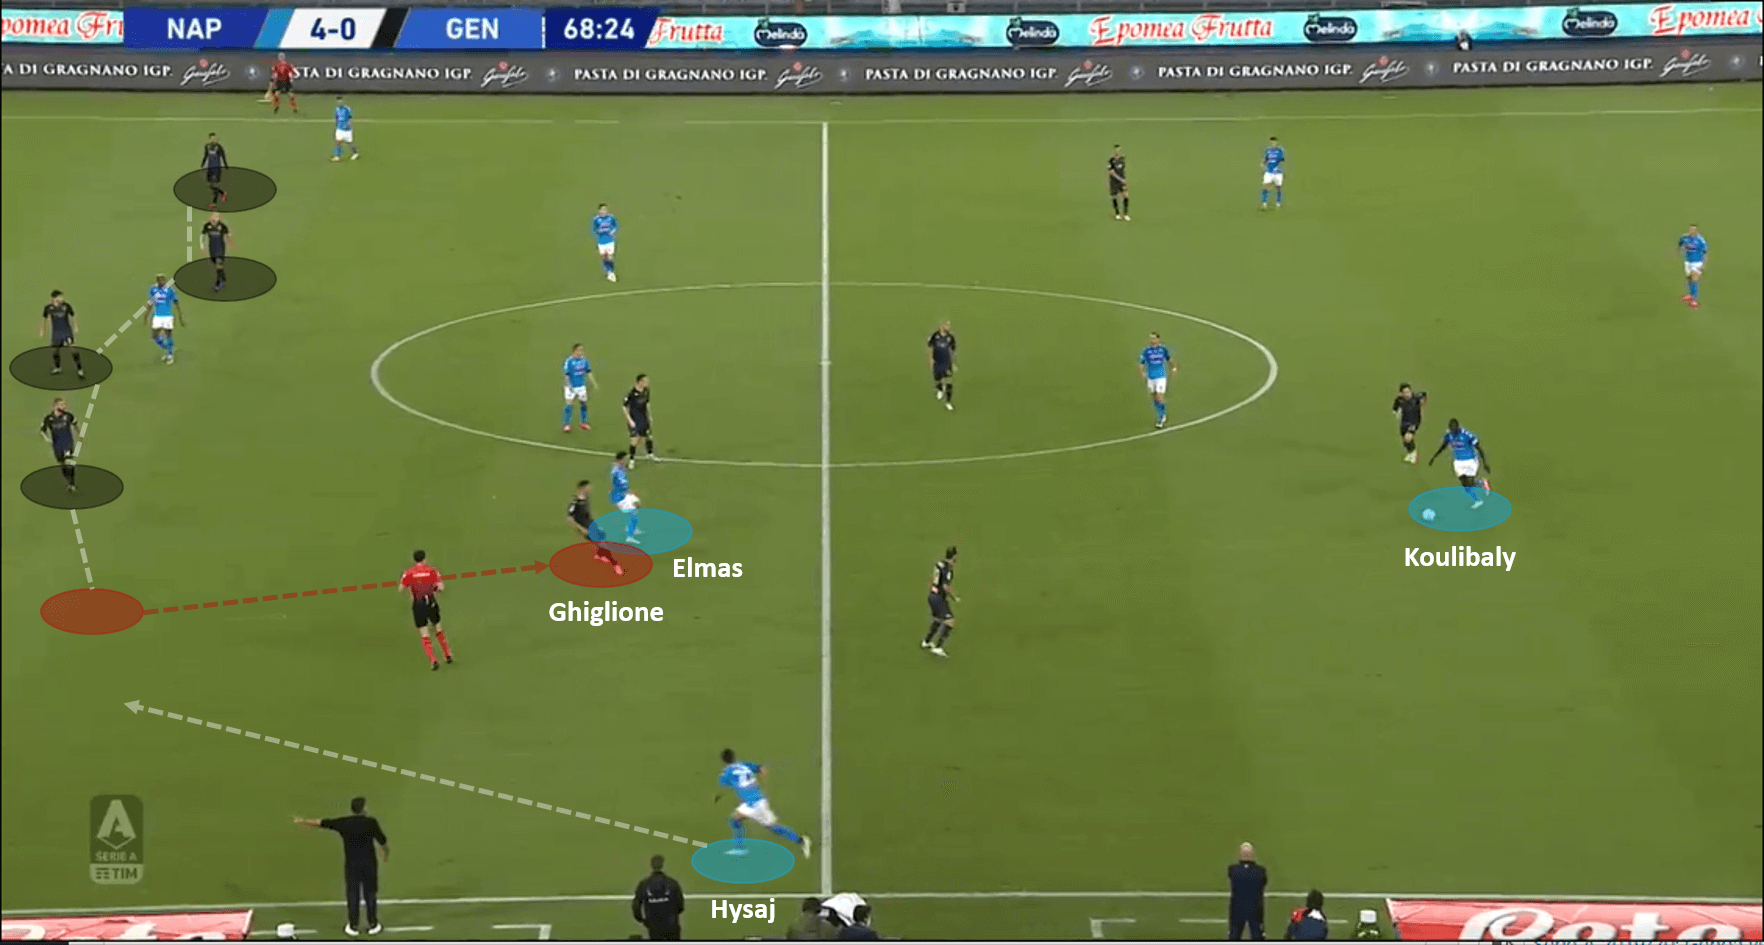 Serie A 2020/21: Napoli vs Genoa – tactical analysis tactics